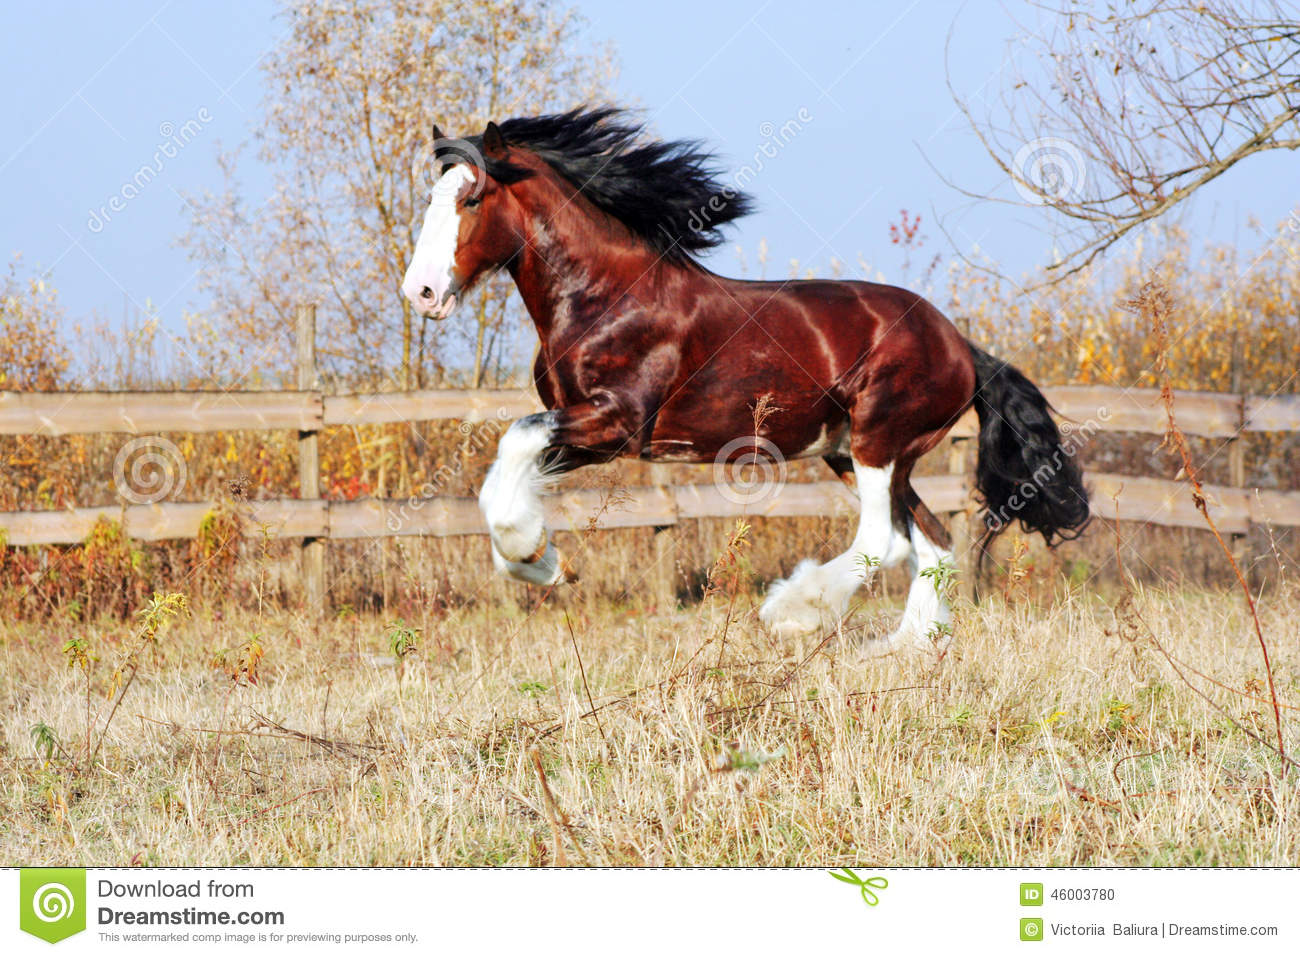 Clydesdale Horse Heavy Draft Horse Breed Bay Stallion Walks In The